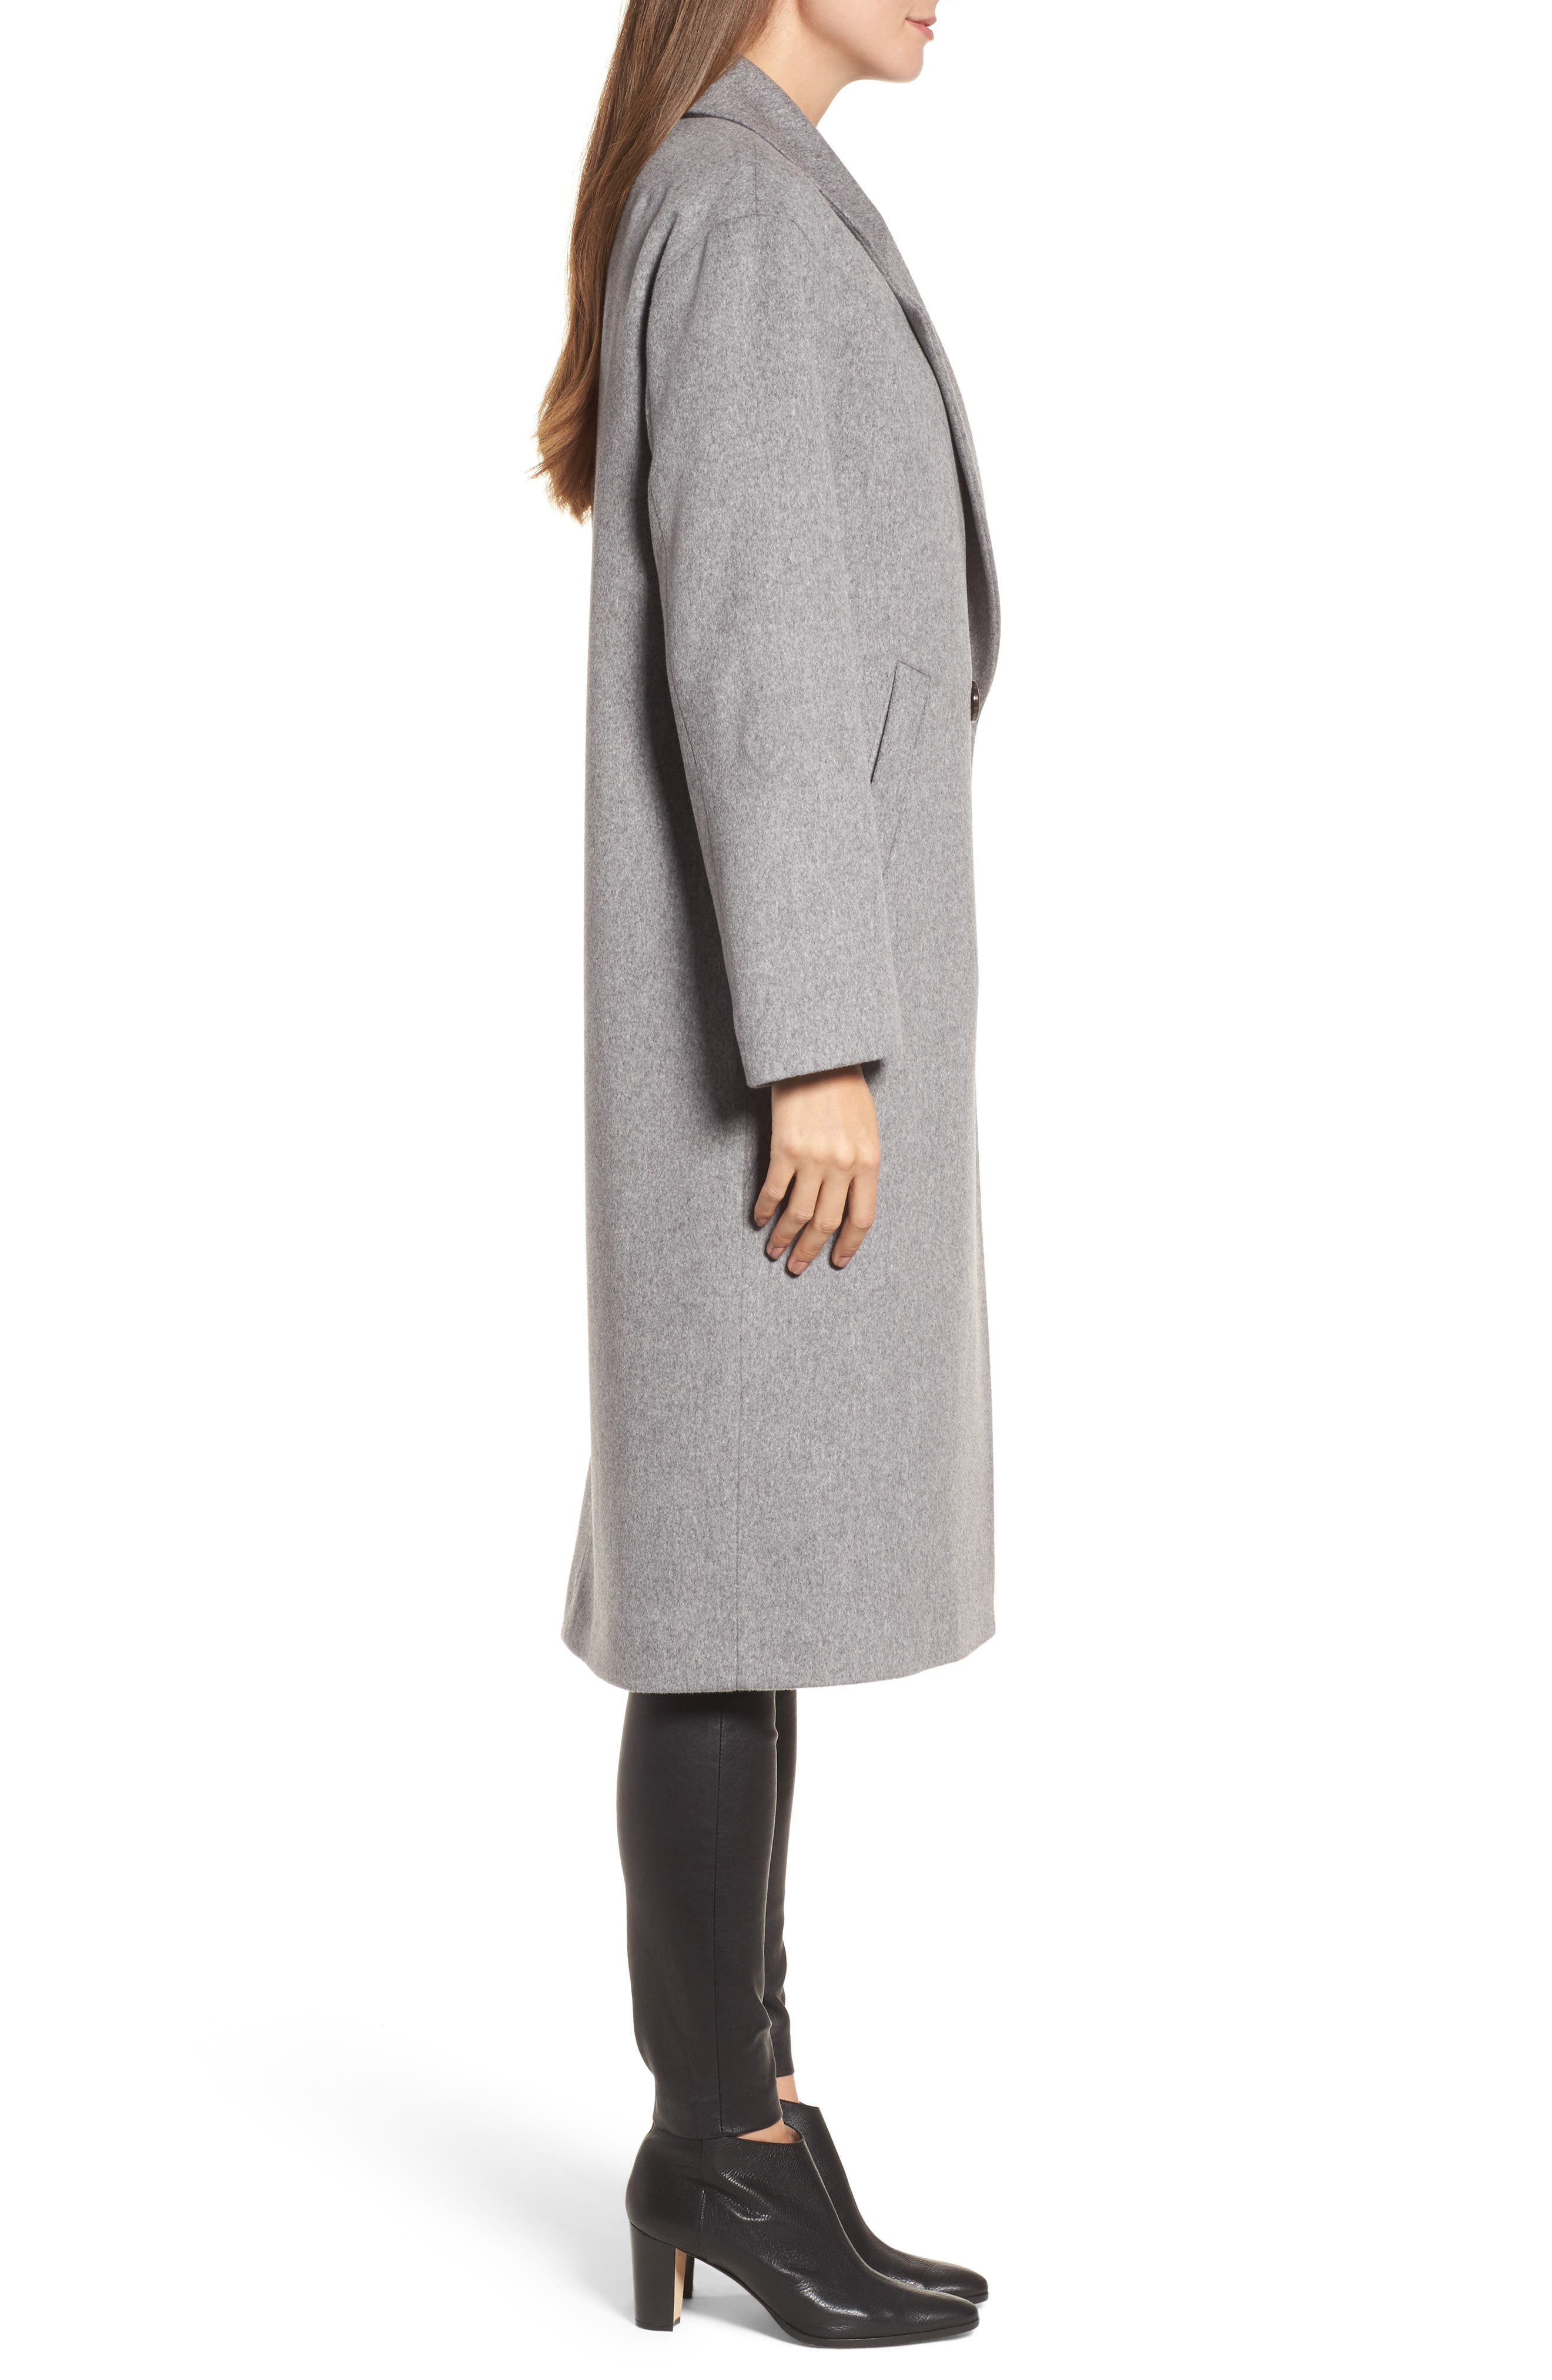 45 Loro Piana Wool Coat,                             Alternate thumbnail 3, color,                             080